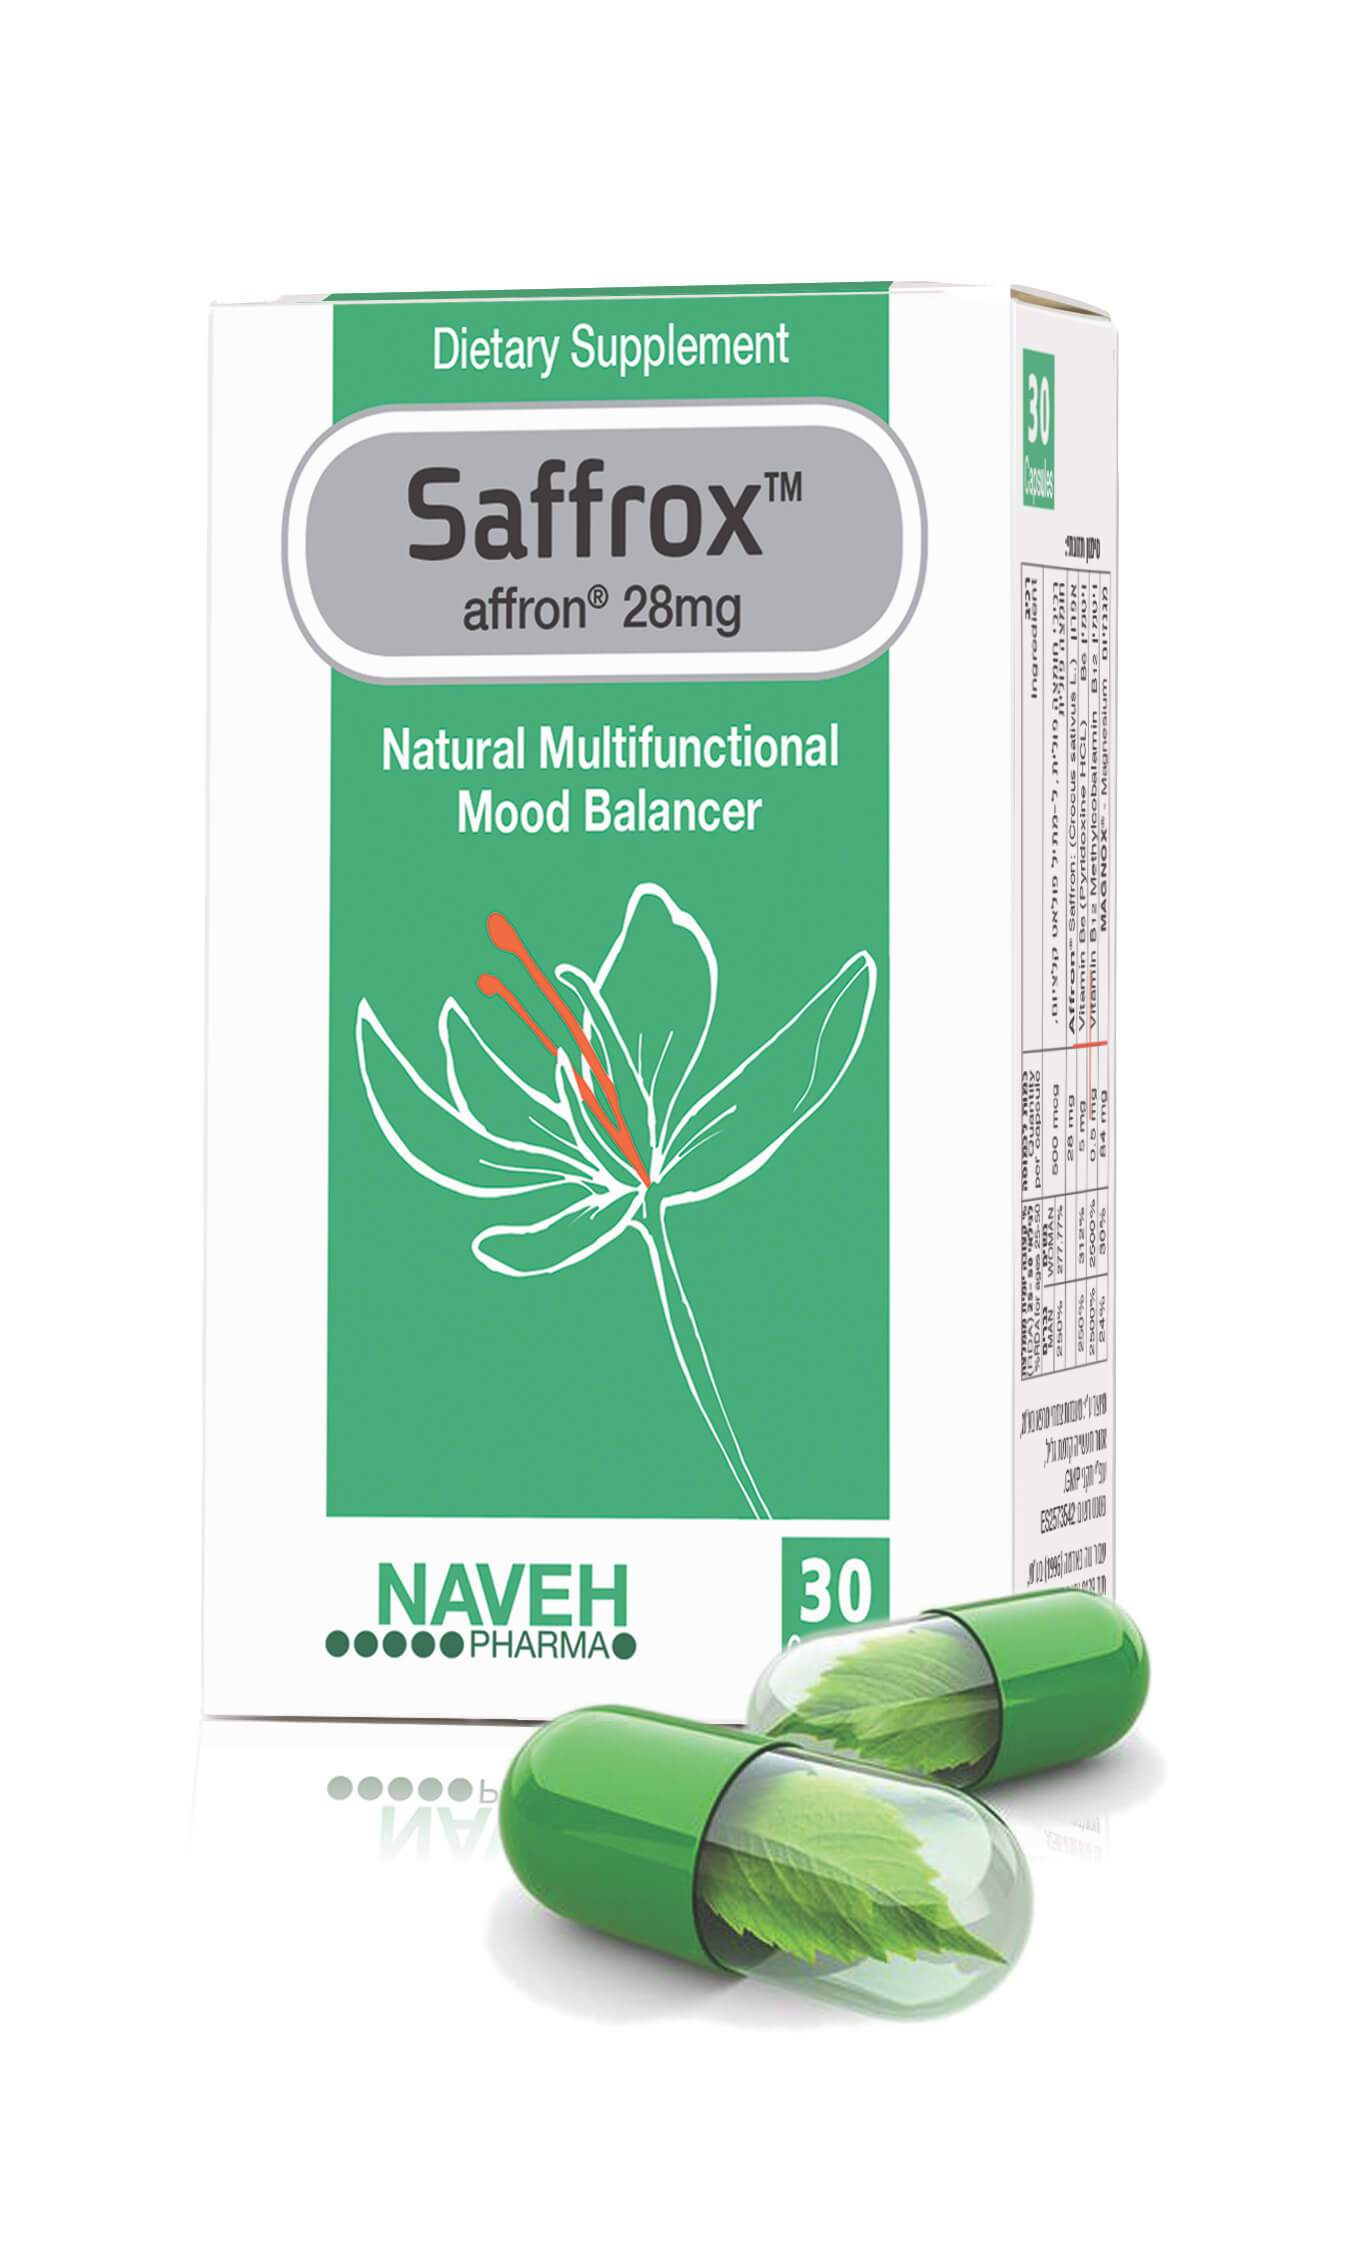 Natural Mood Balancer Anxiety Stress Relieve Sleeping Aid. Saffrox. (30 caplets) - Medactiveshop